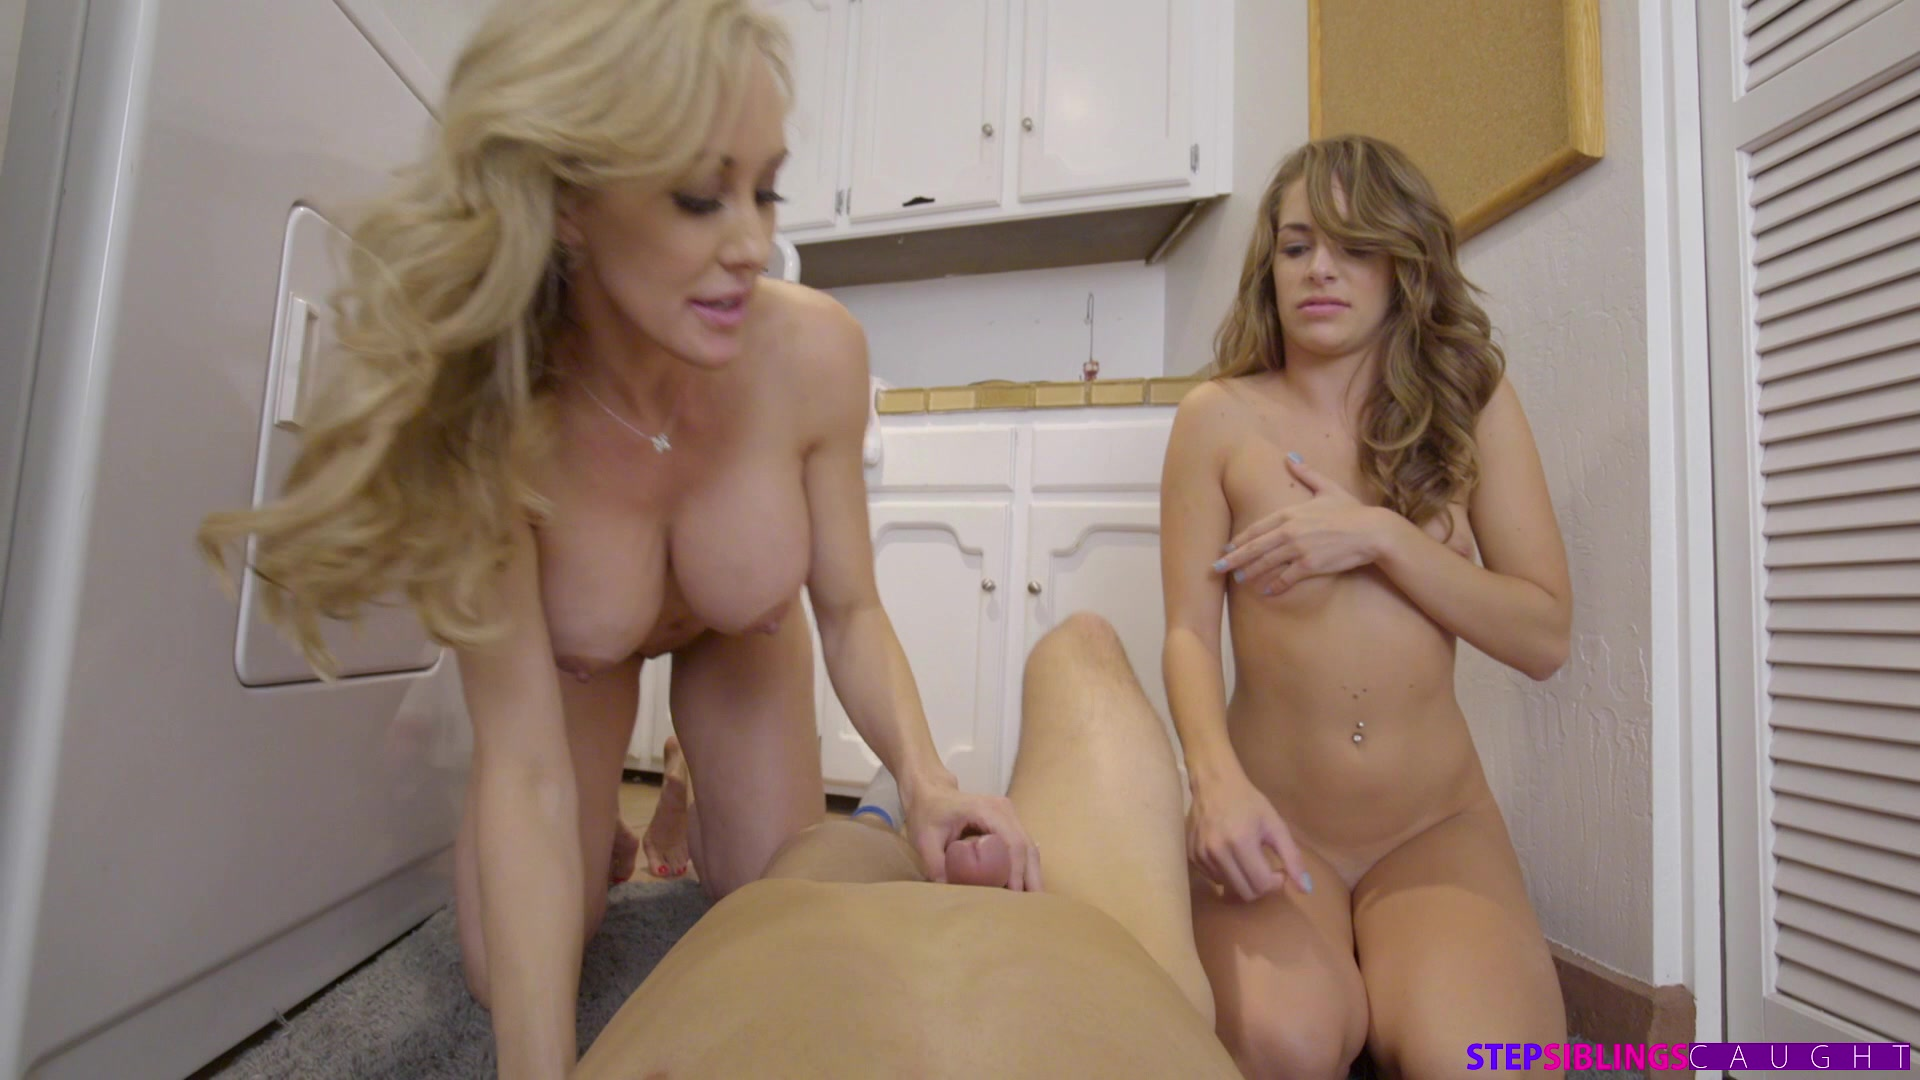 StepSiblingsCaught.com - Brandi Love,Kimmy Granger: Sorority Mom Fucks Step Sister And Brother - S1:E5